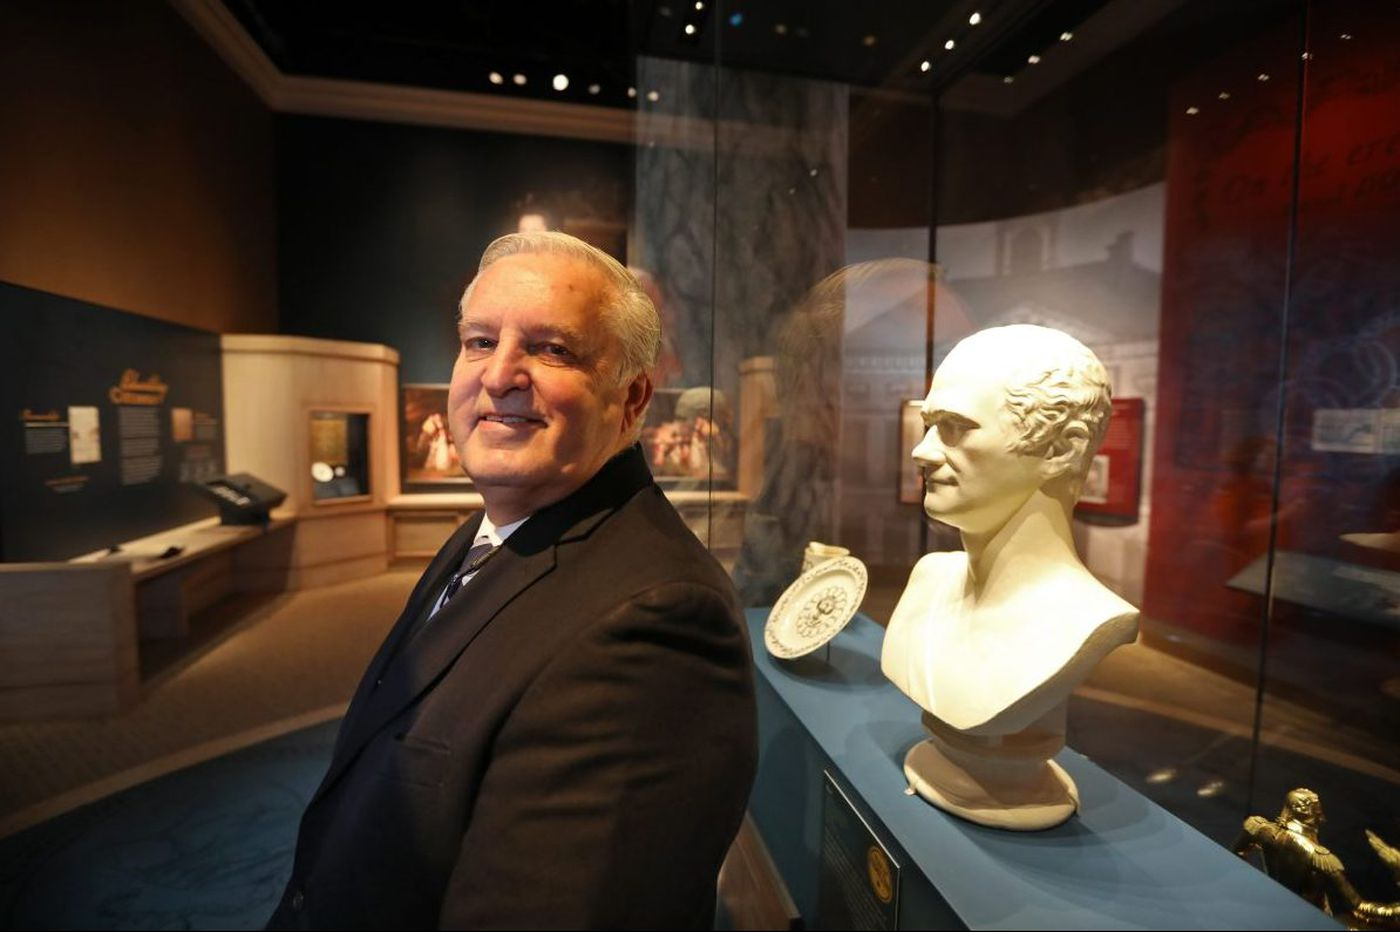 Alexander Hamilton's fifth great-grandson, Doug, says the duel 'was just idiotic'